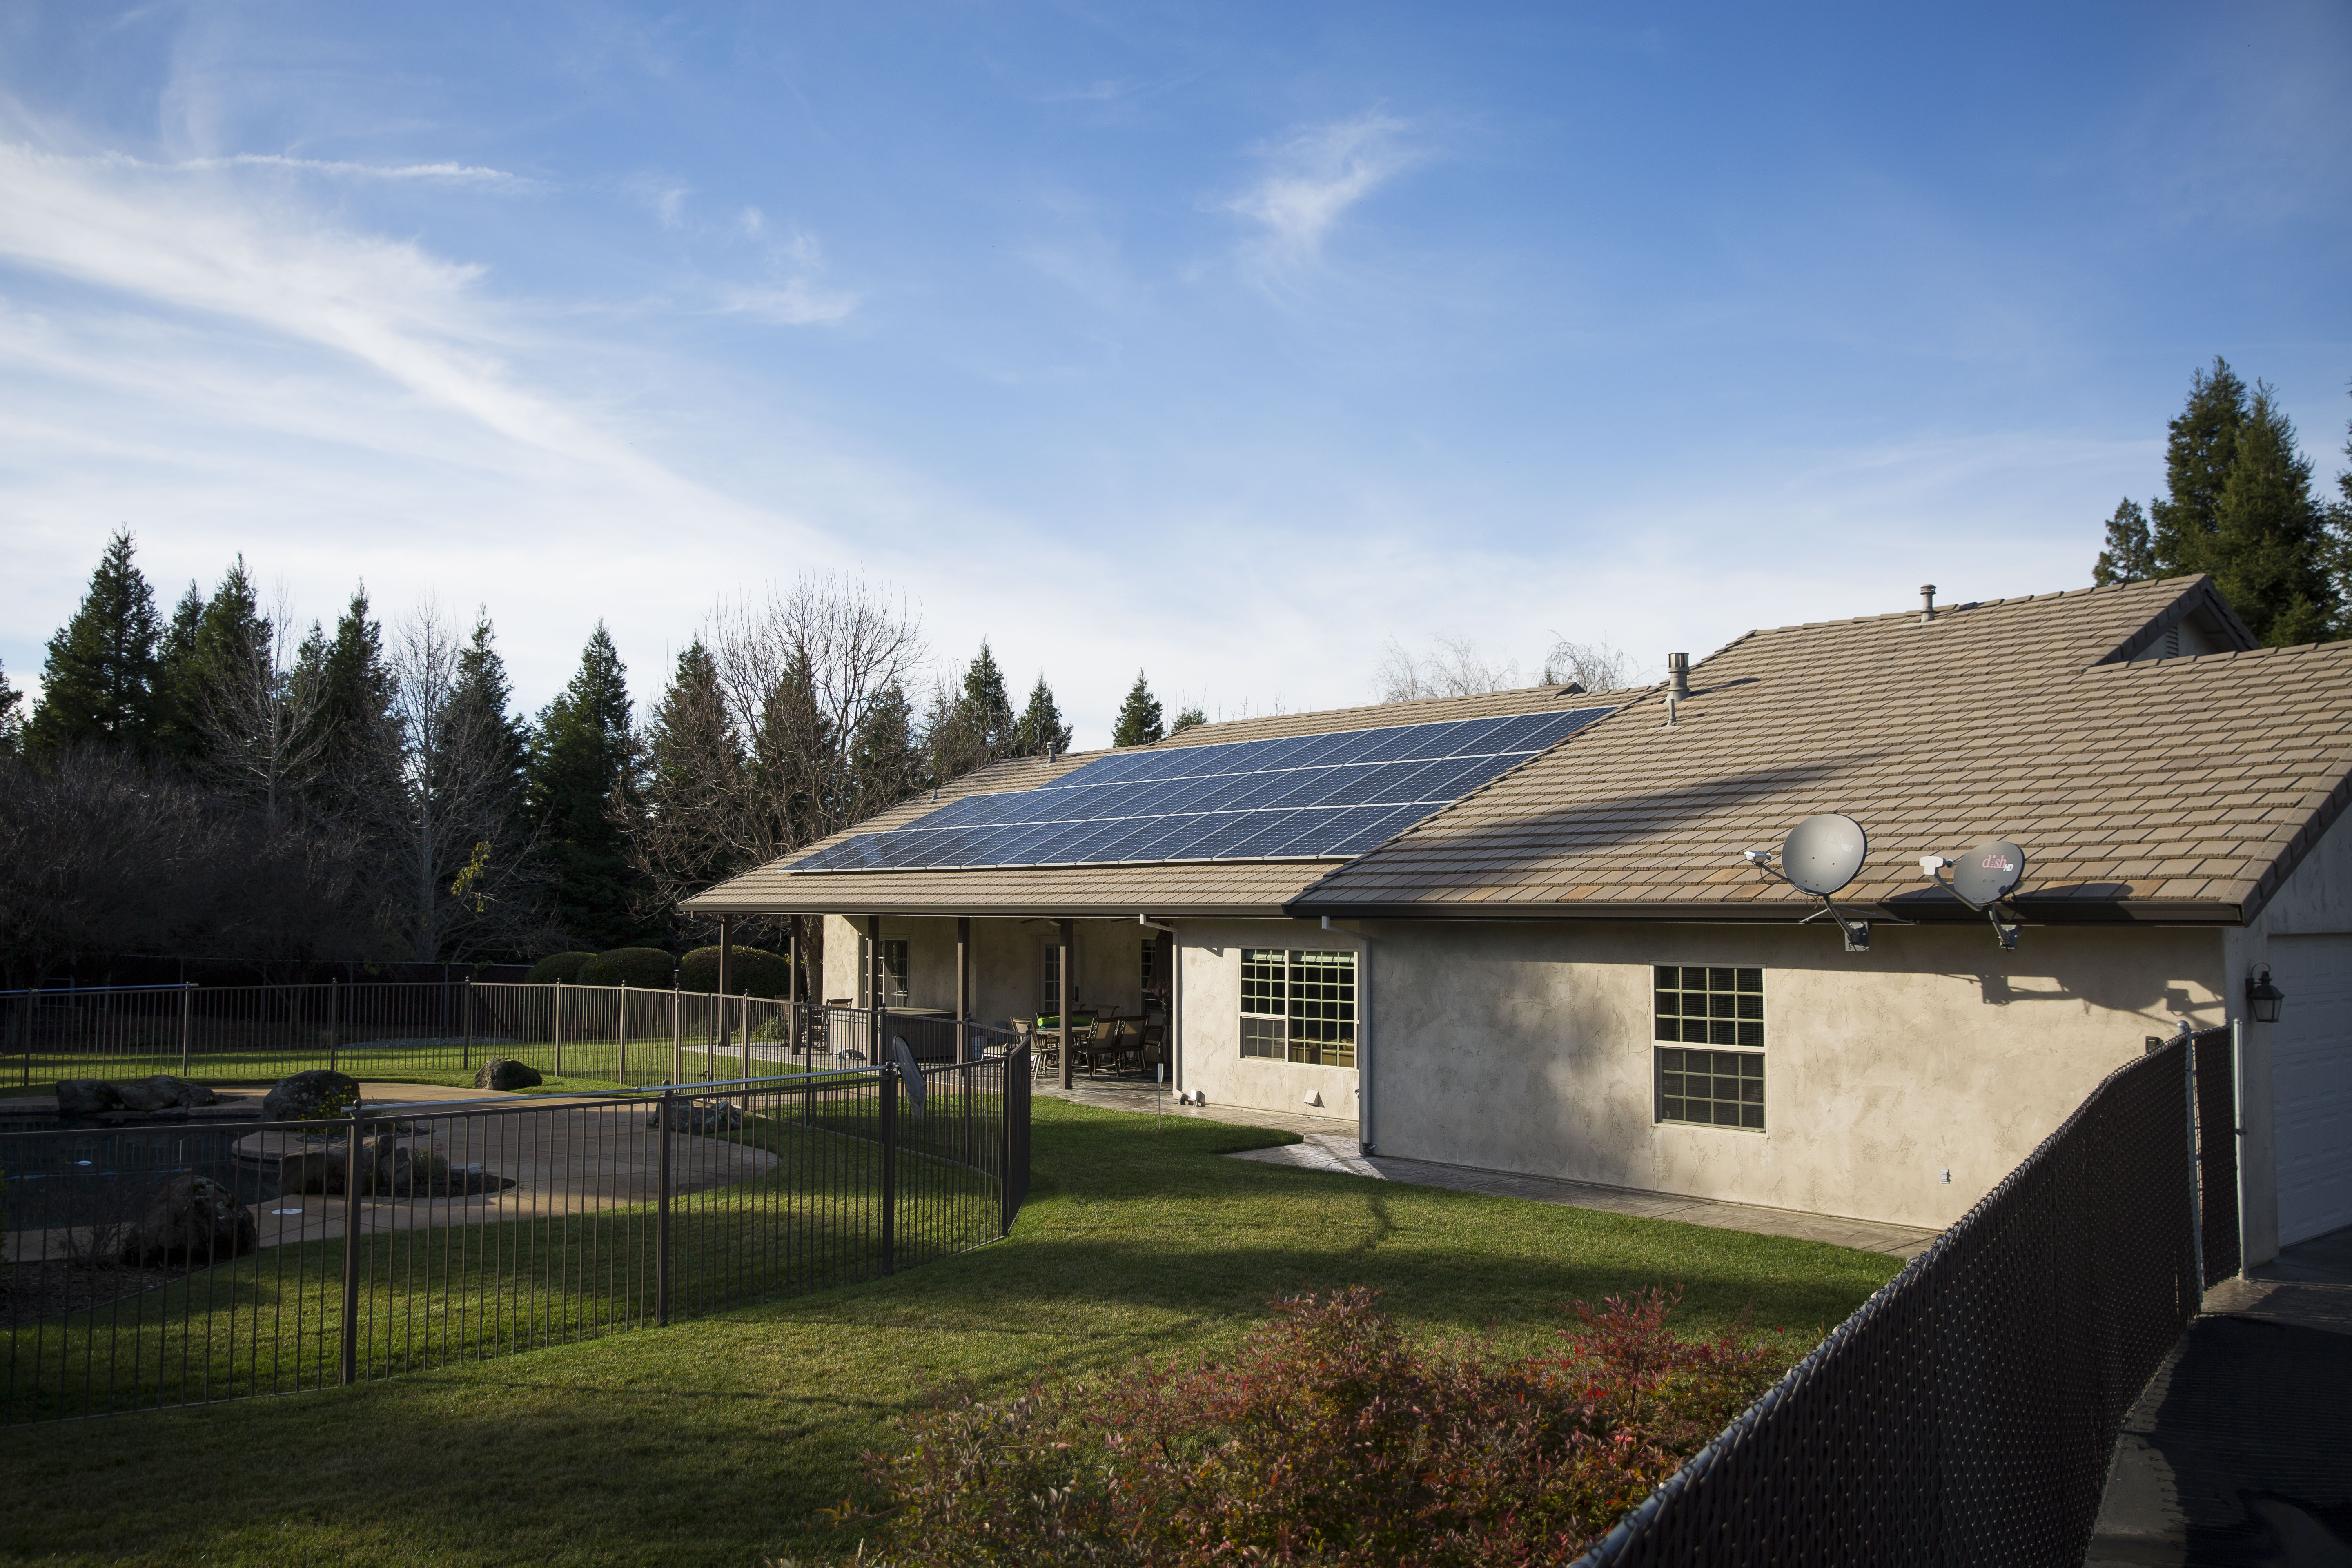 redding solar energy residential home